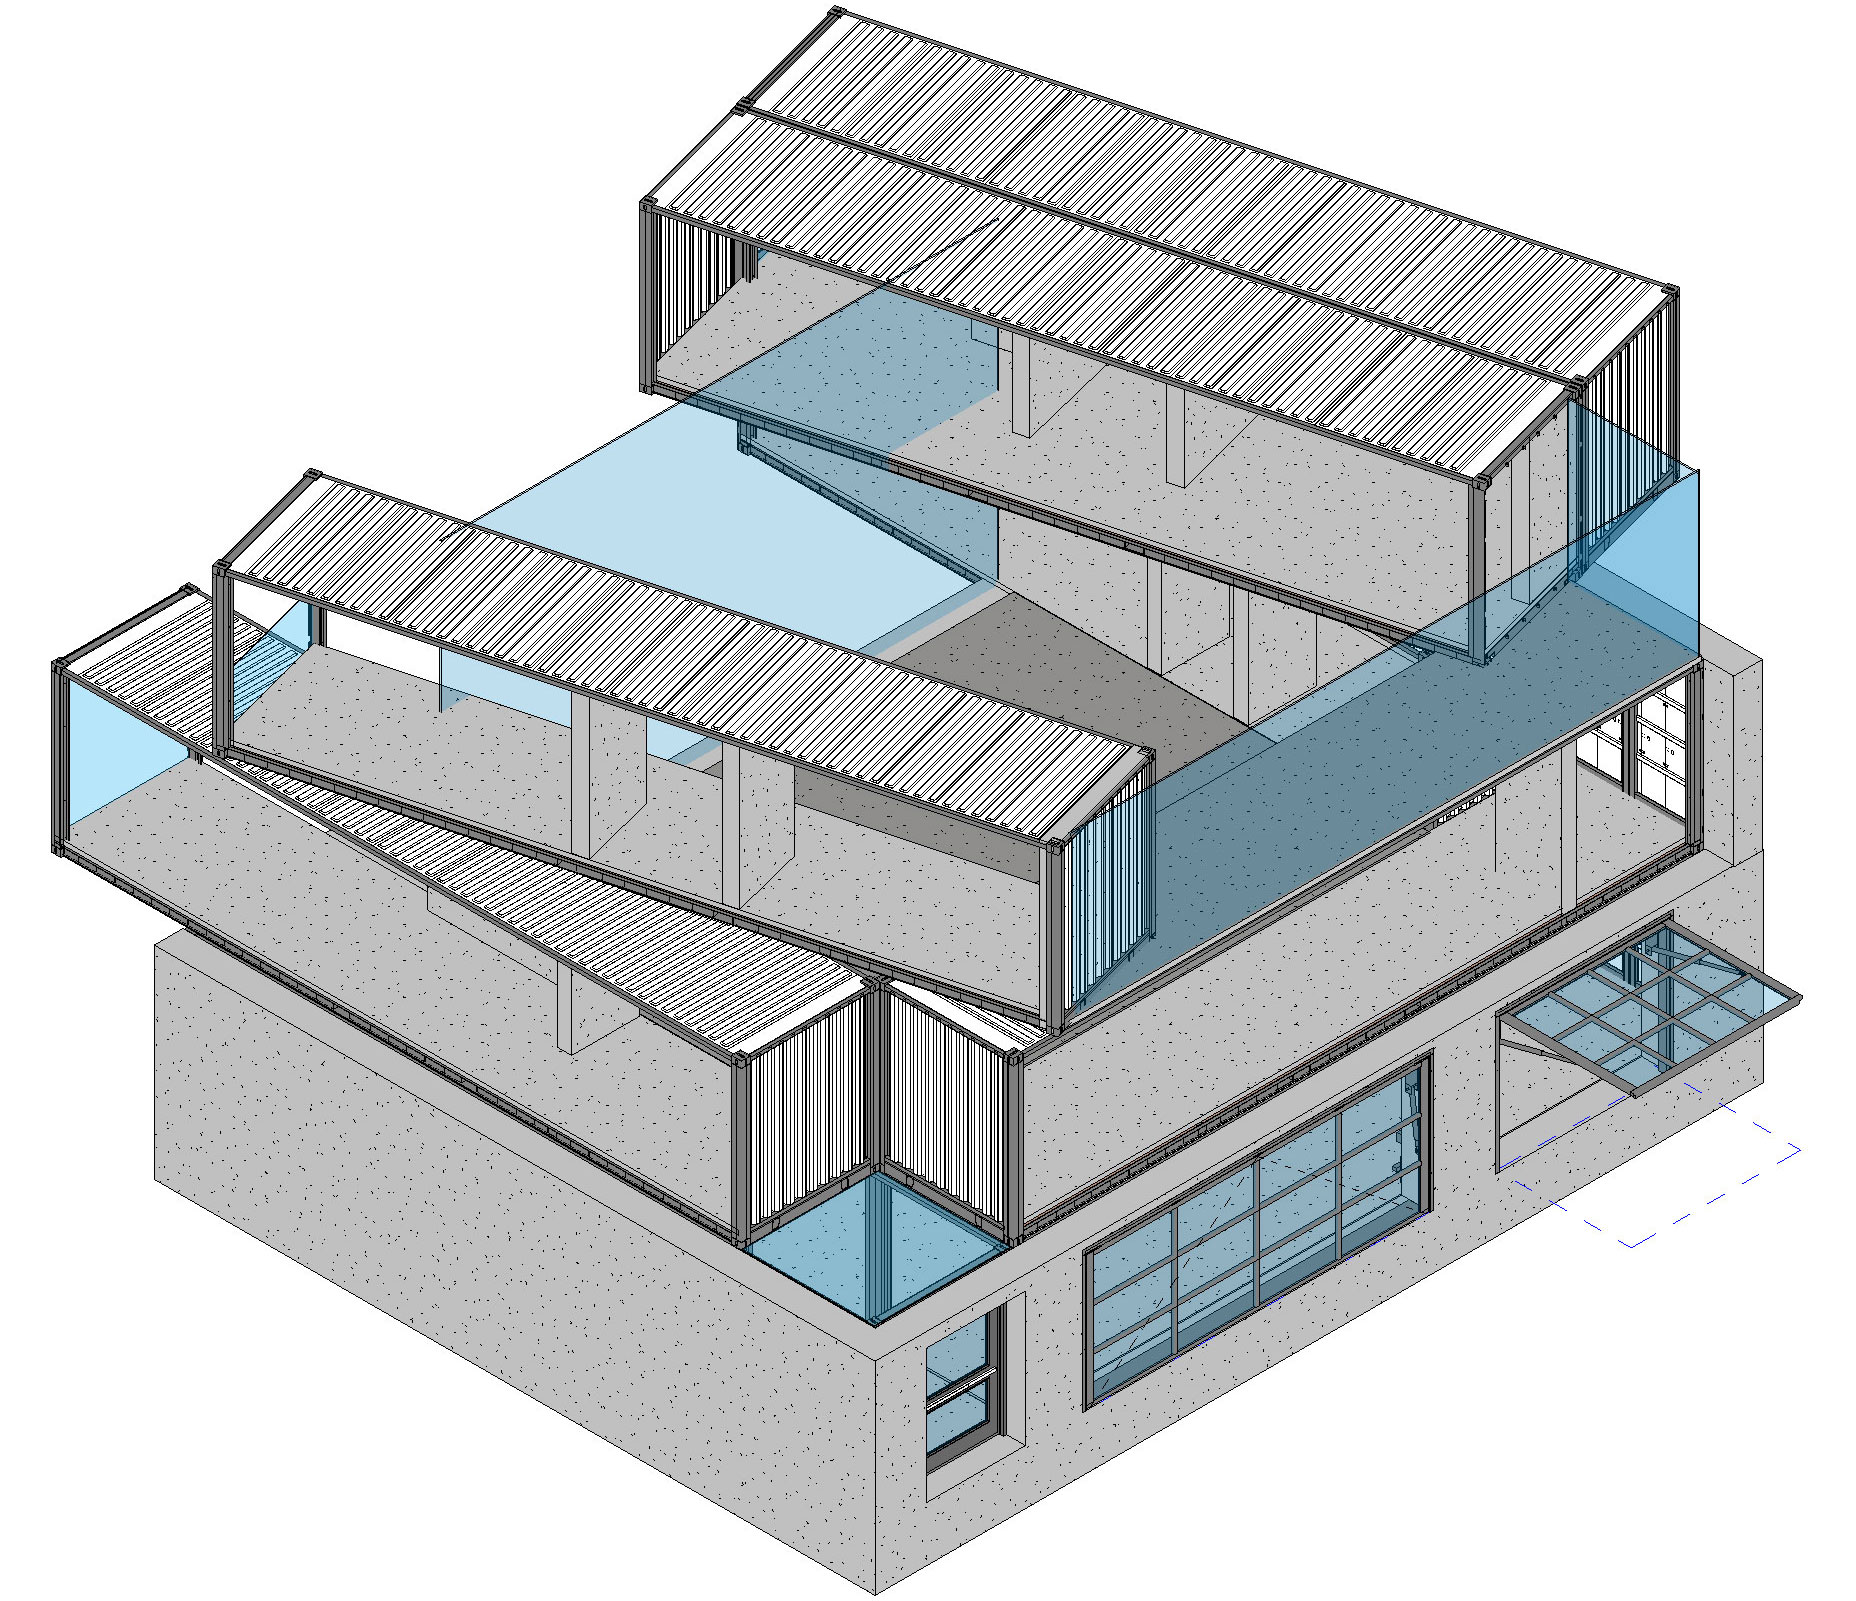 Mass Model built in Revit > ECO INDUSTRIAL HOUSE Recycle